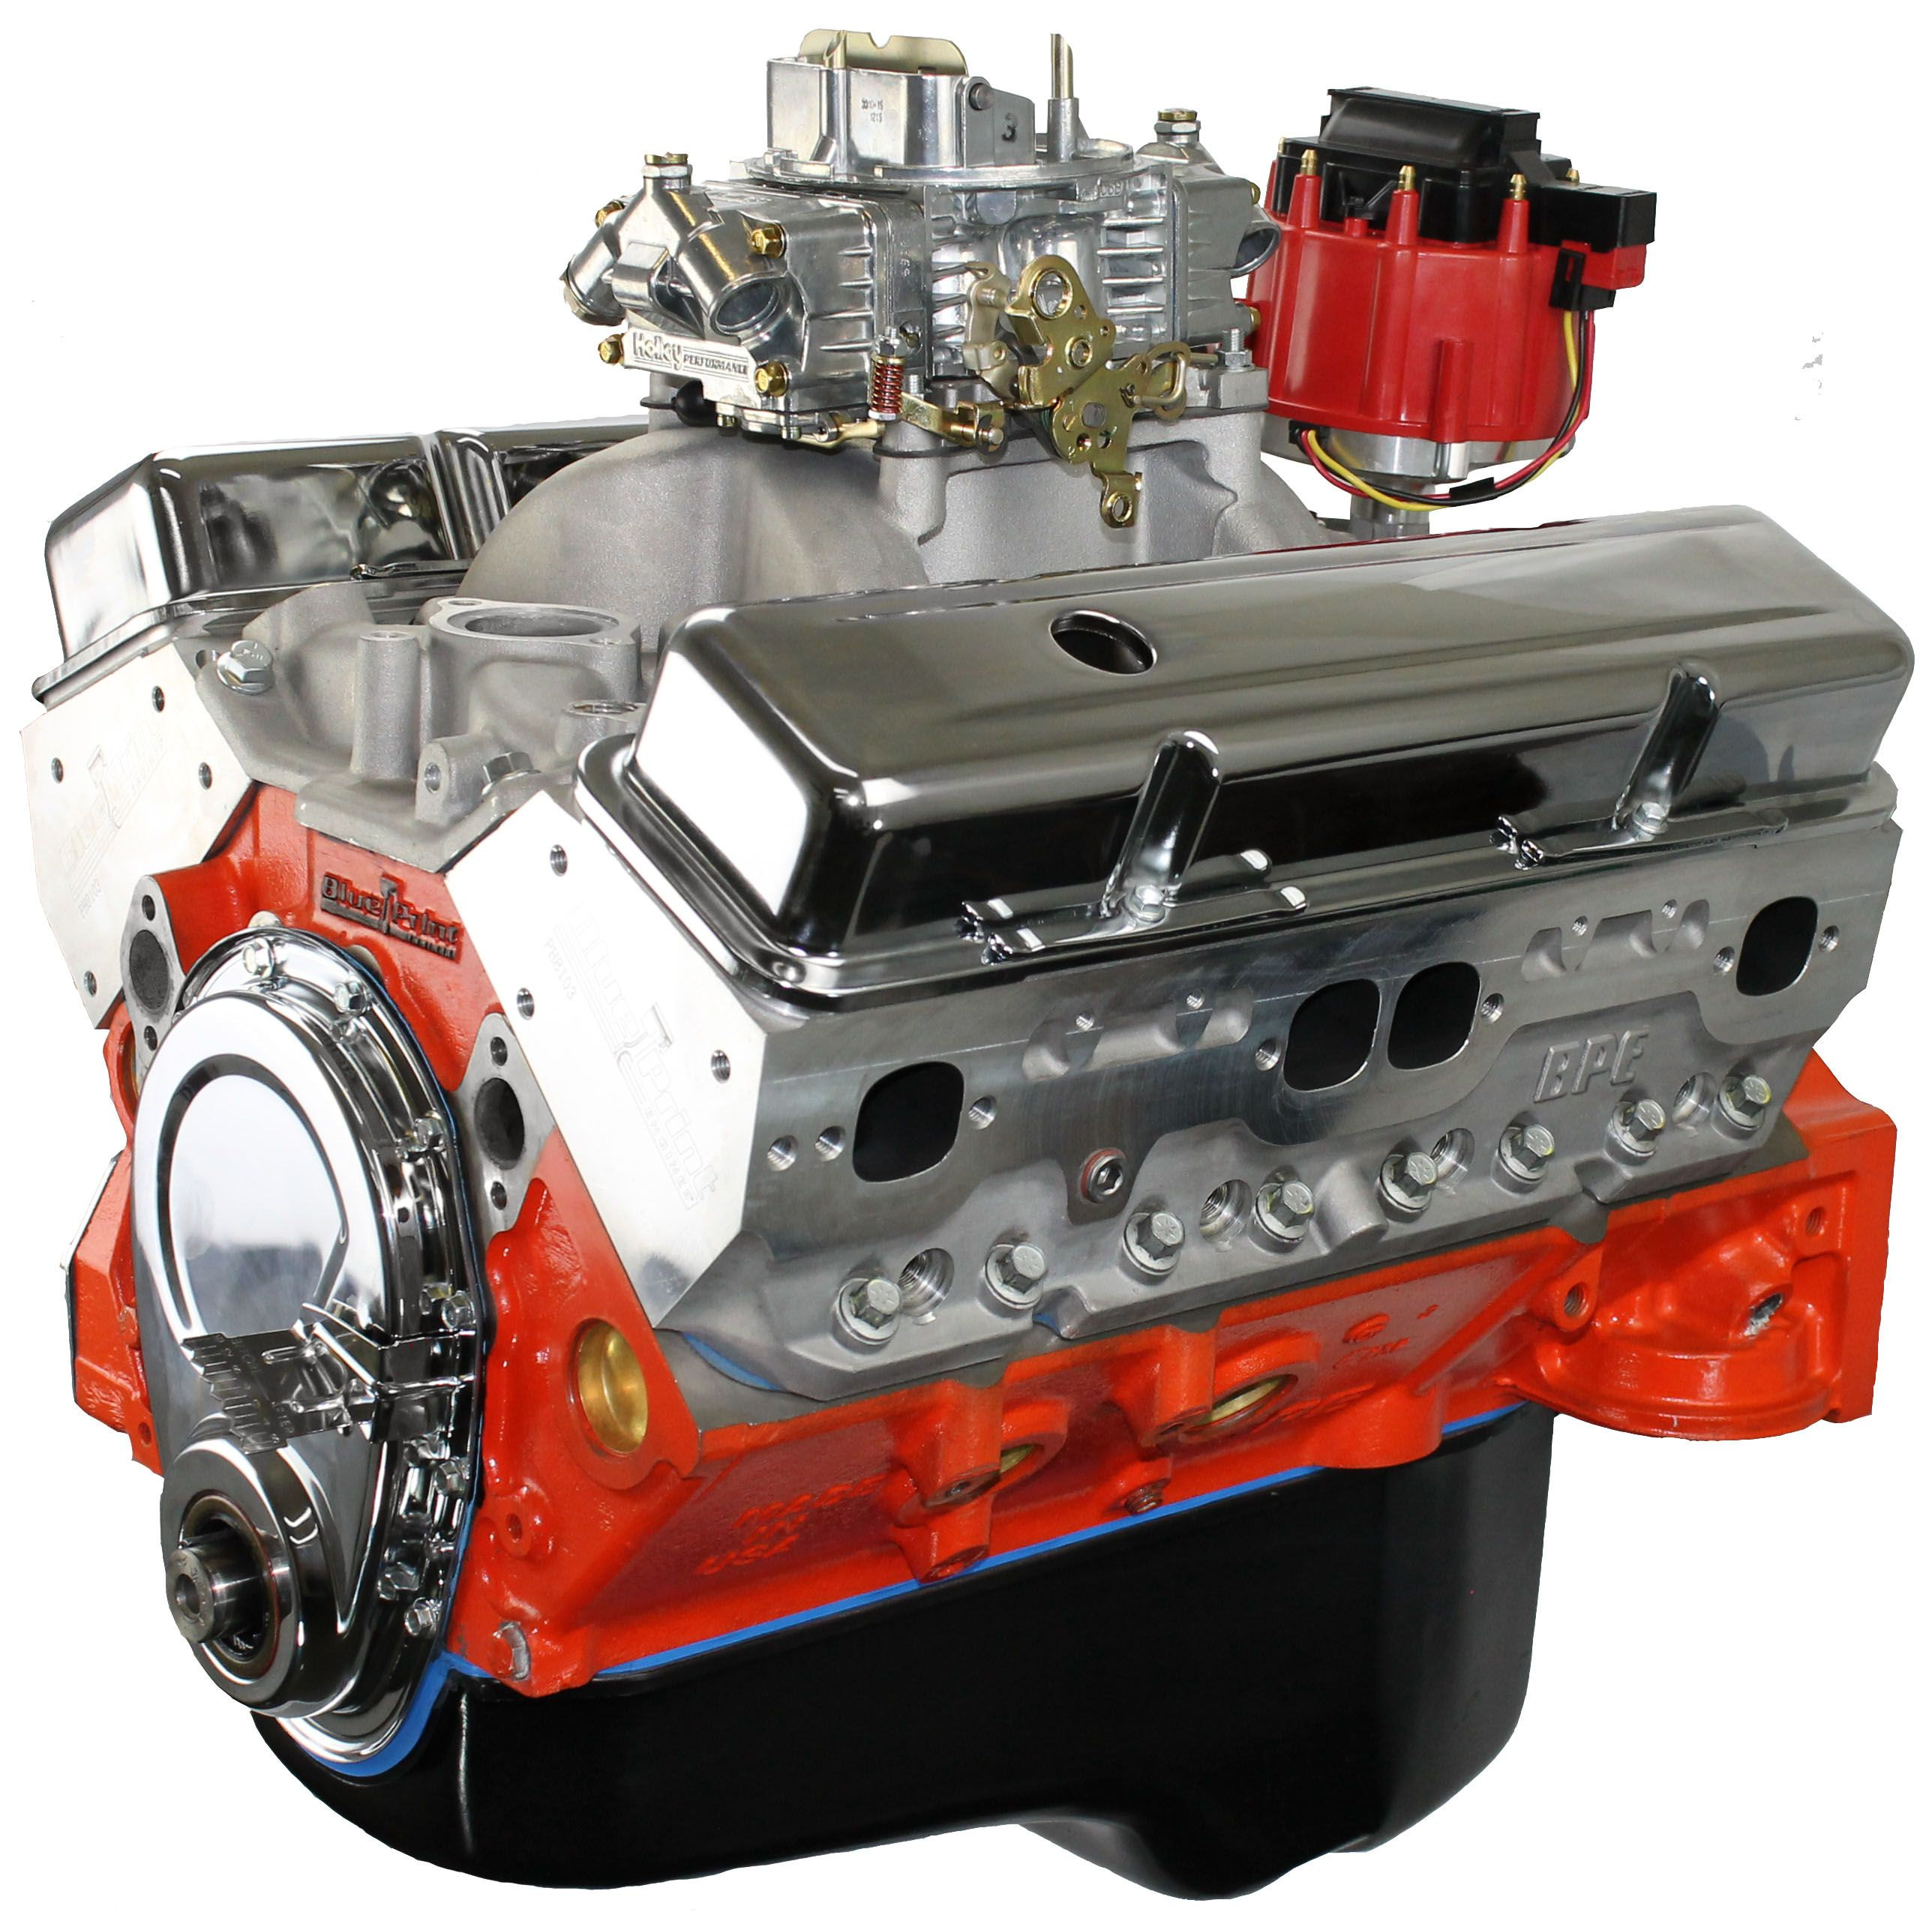 400ci stroker crate engine small block gm style dressed blueprint engines bp4001ctc1 rated at 460 hp470 torque features aluminum heads and roller cam crateengines blueprintengines 400 bp4001ctc1 malvernweather